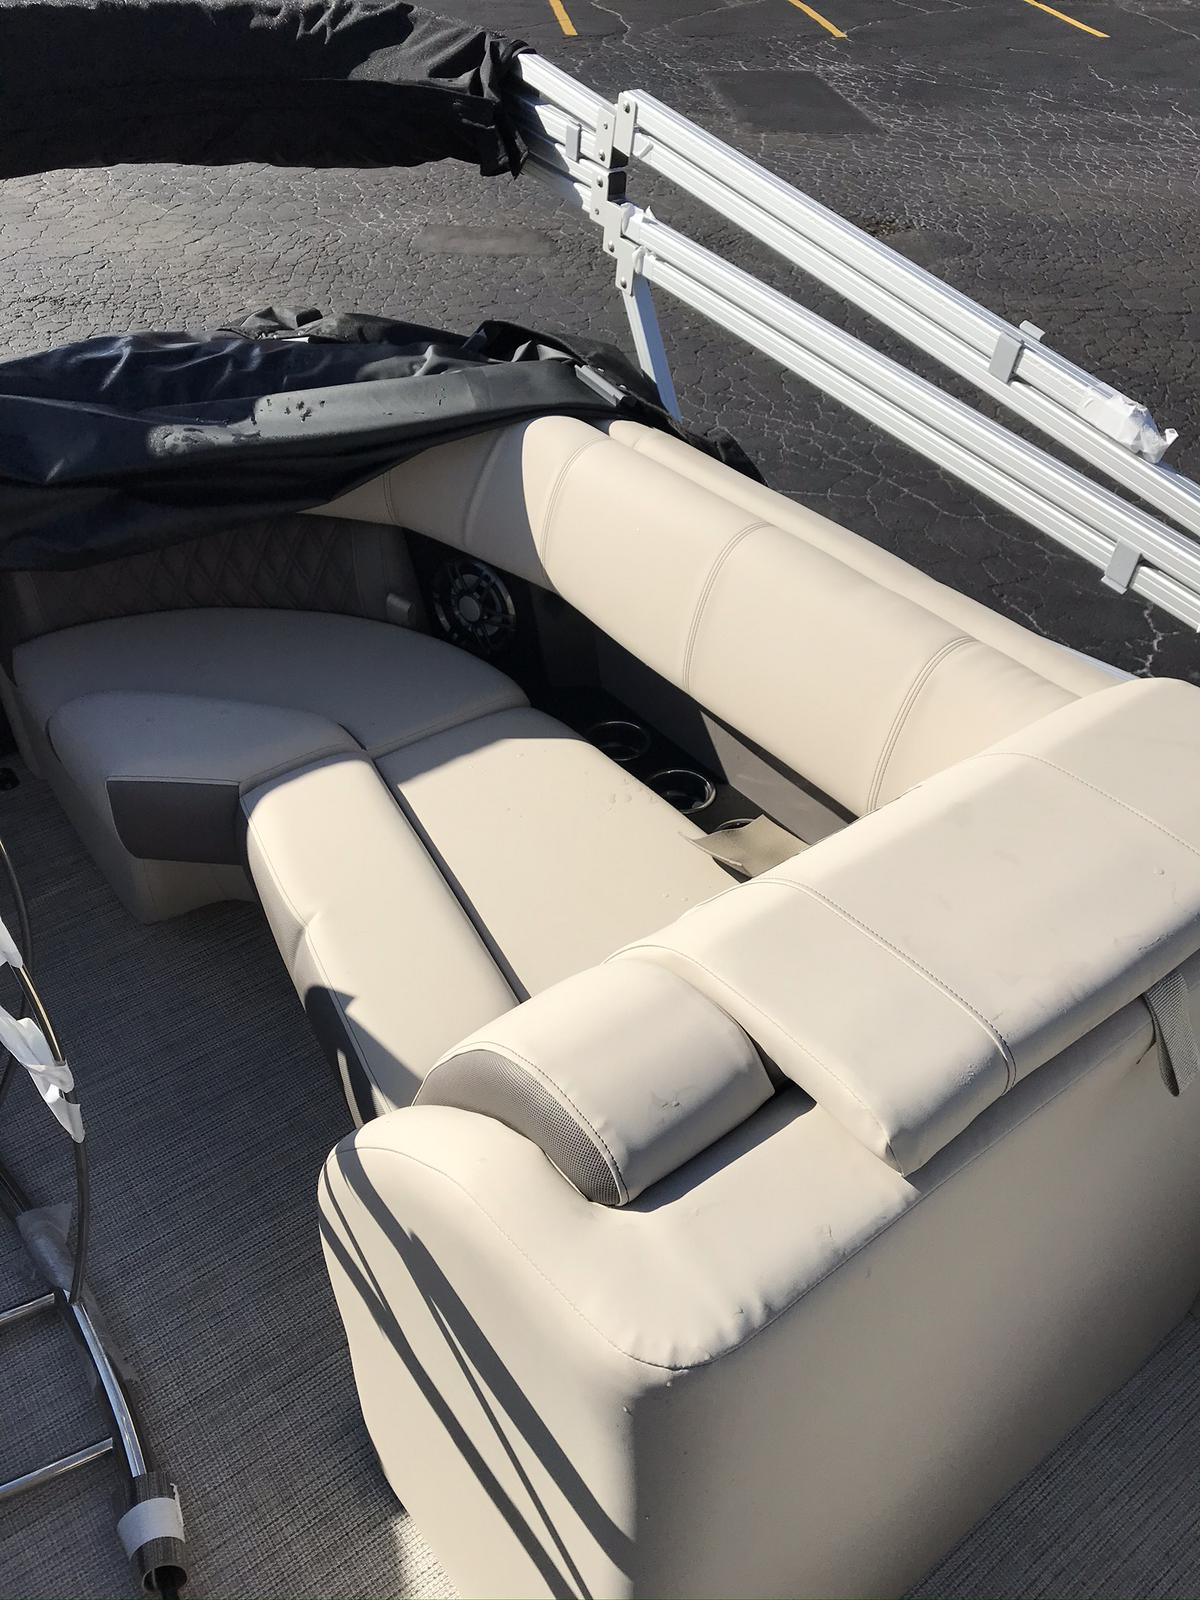 2021 Harris boat for sale, model of the boat is Solstice 230 & Image # 7 of 12